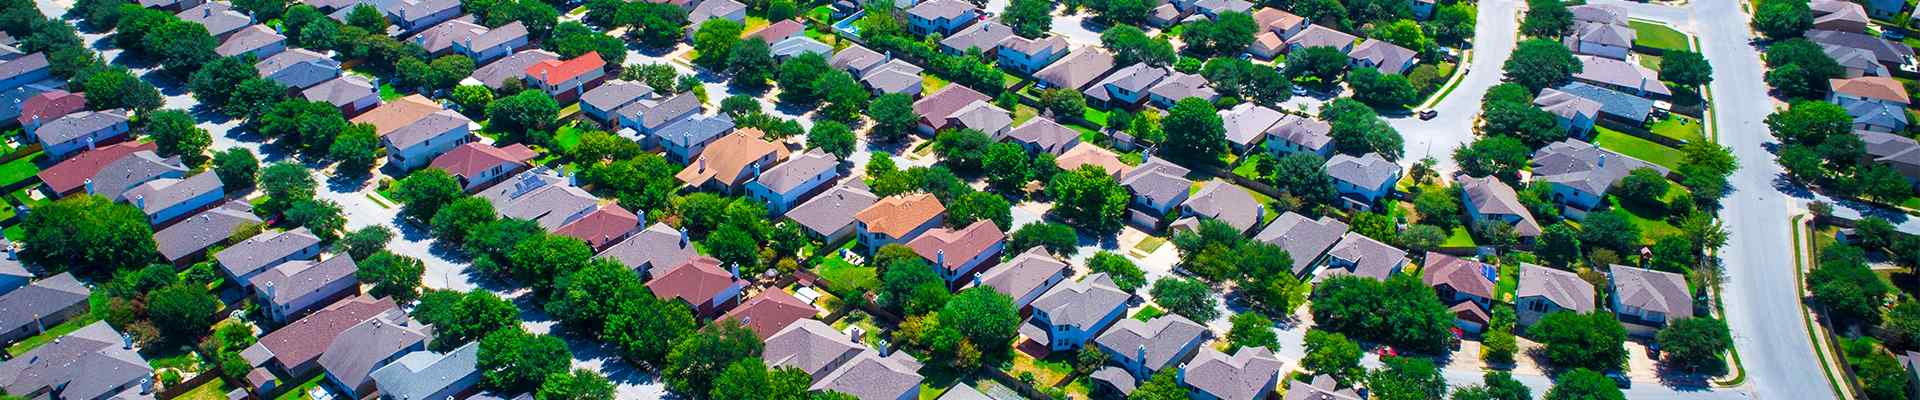 a suburban neighborhood in sachse texas